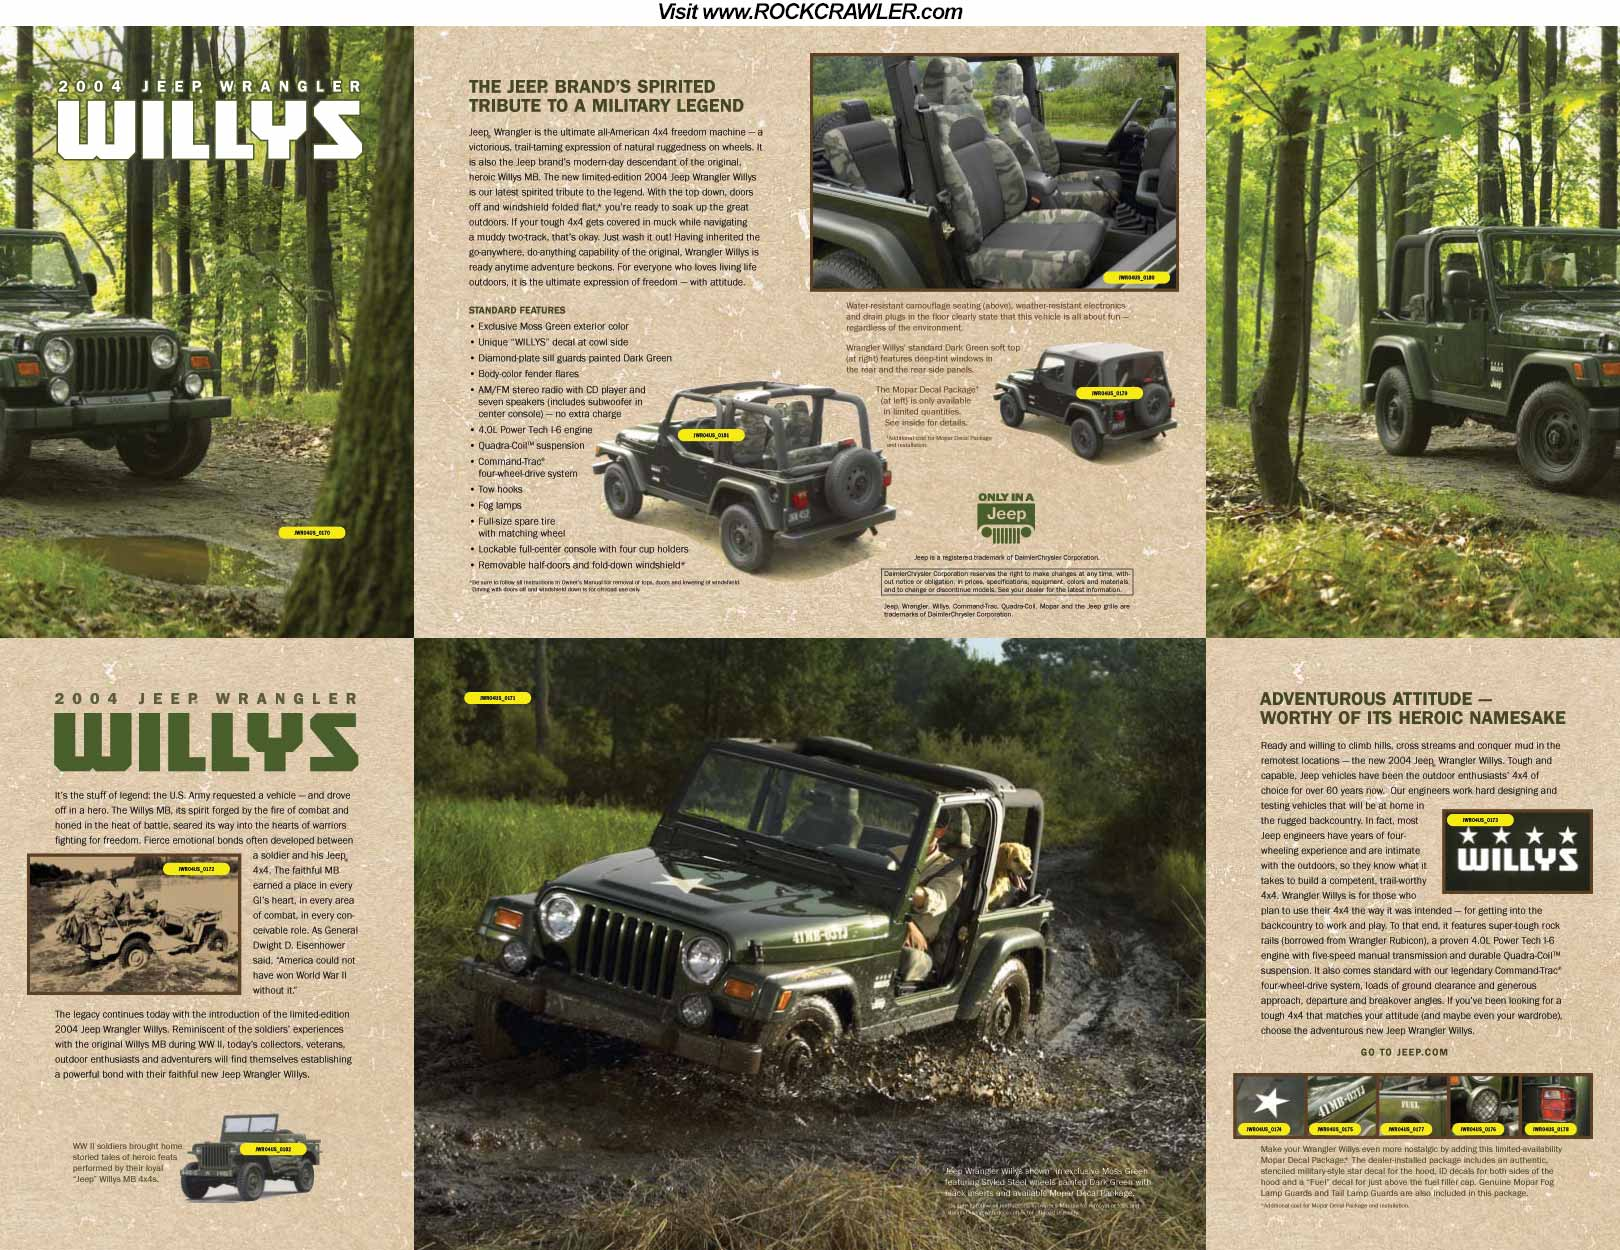 Retro Tj Jeep Wrangler Forum 2004 Fuel Filter Location This Image Has Been Resized Click Bar To View The Full